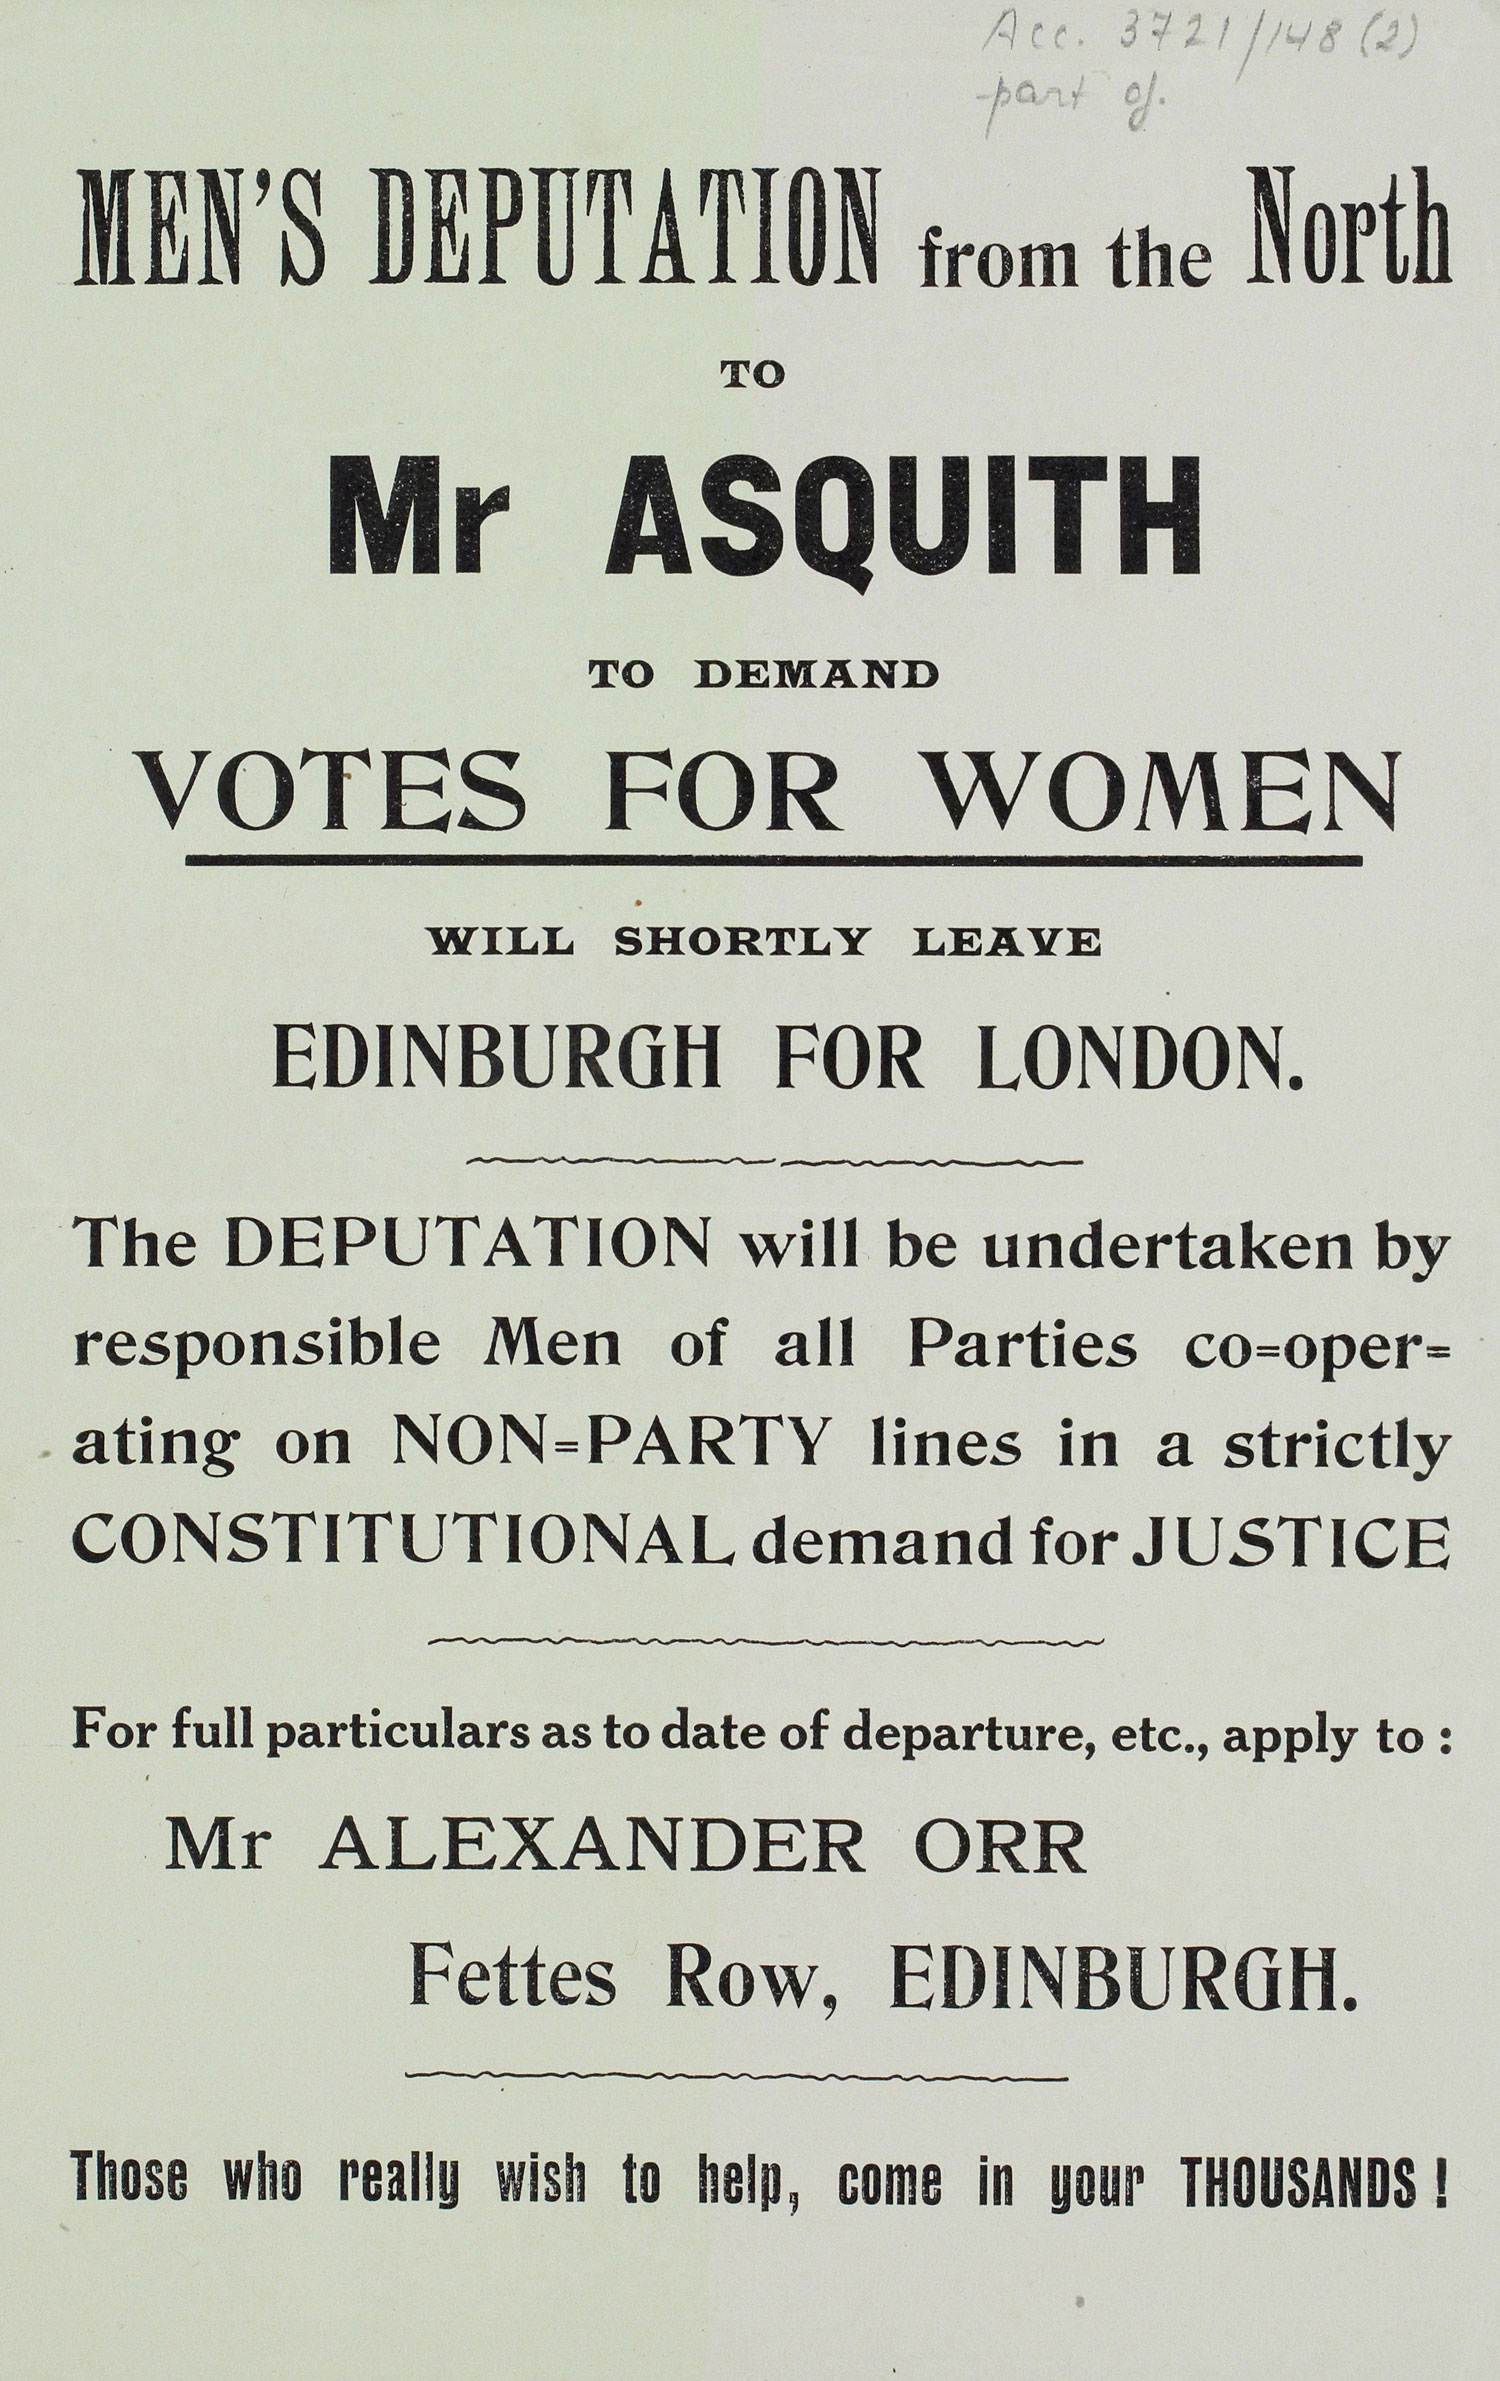 Printed poster, men's pro-suffrage deputation from Edinburgh to London